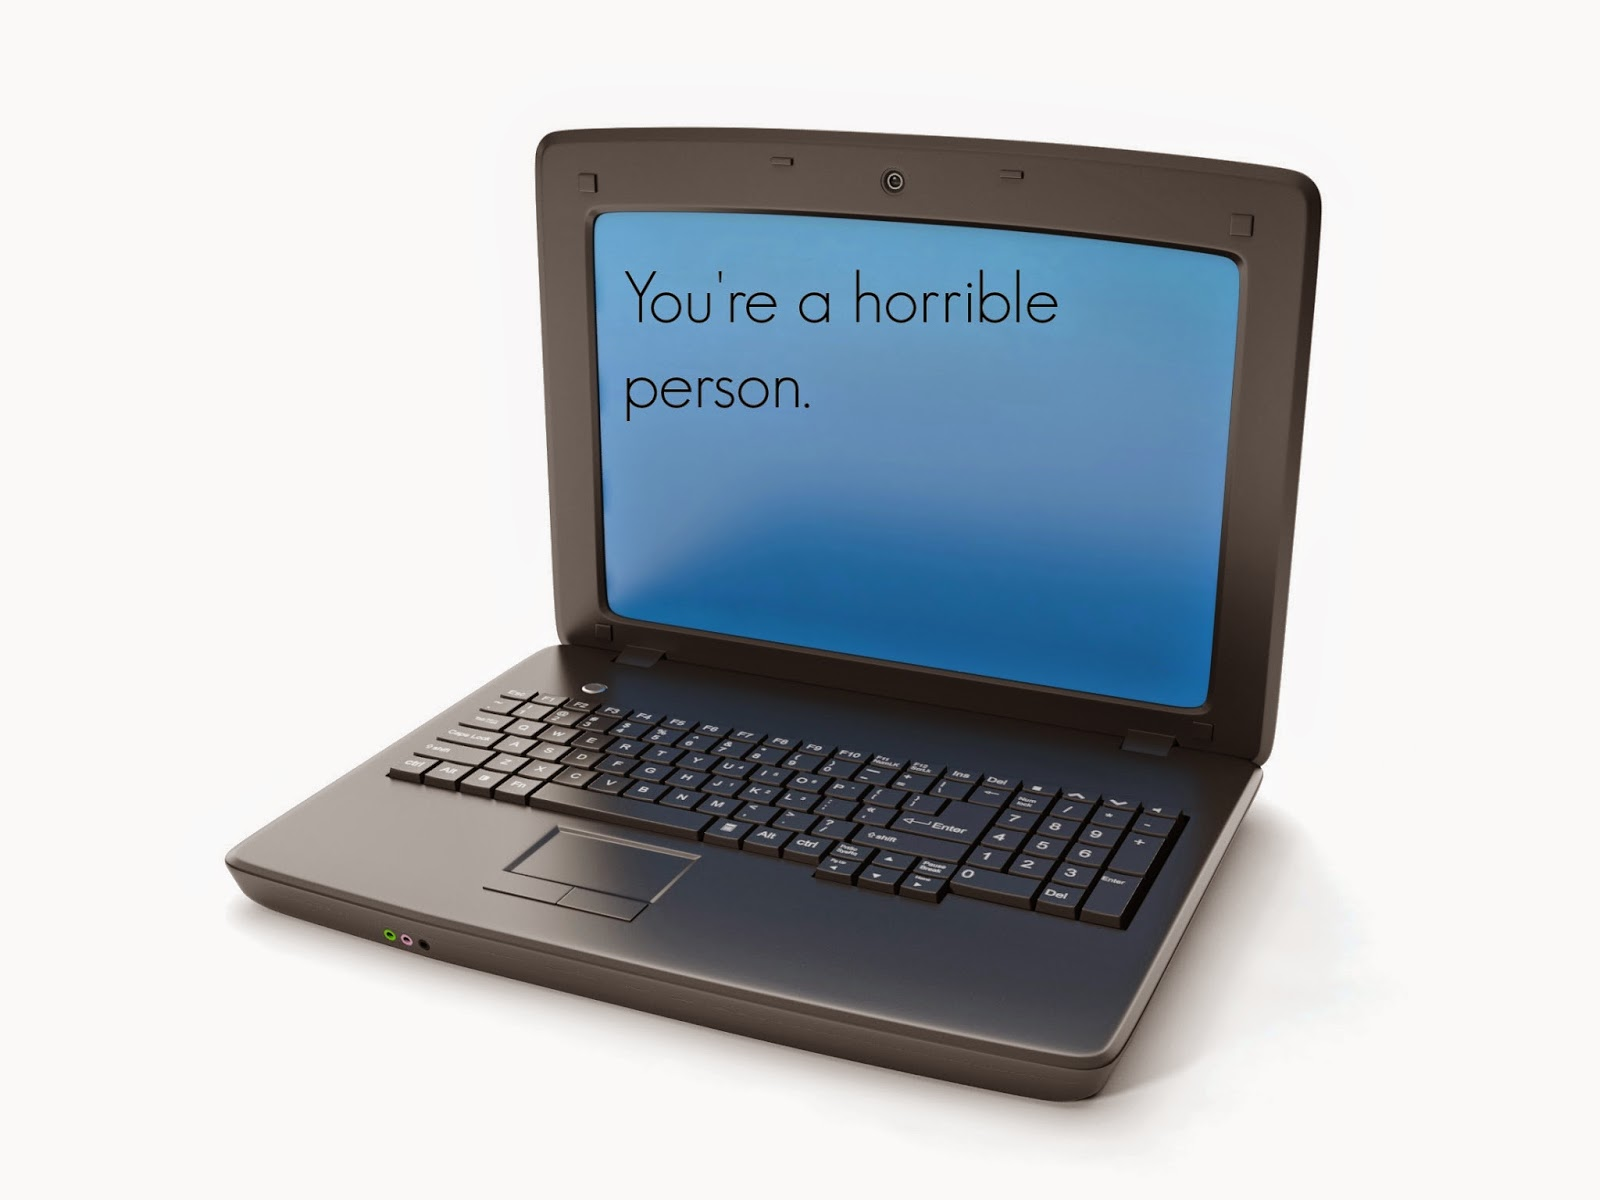 How do i tell my mom that i hate this laptop?